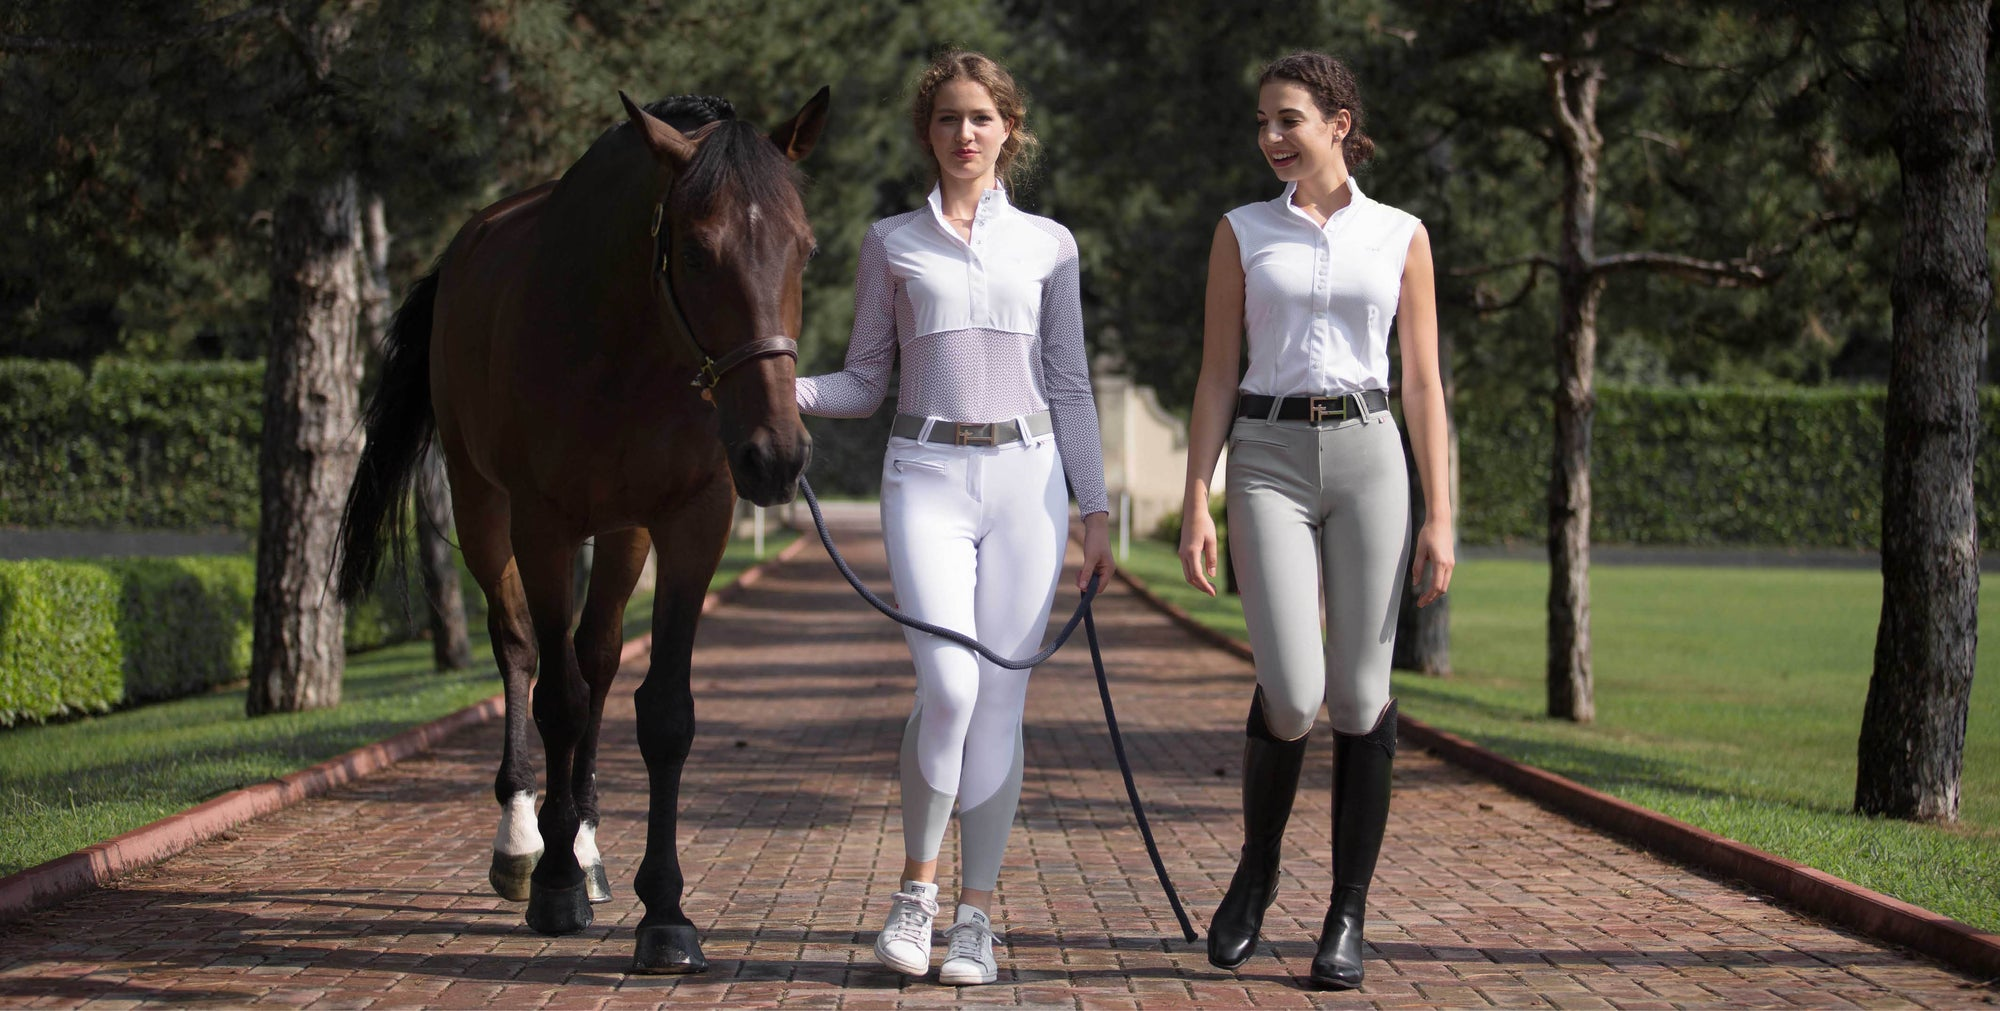 Women's equestrian breeches: history, technology, and prices